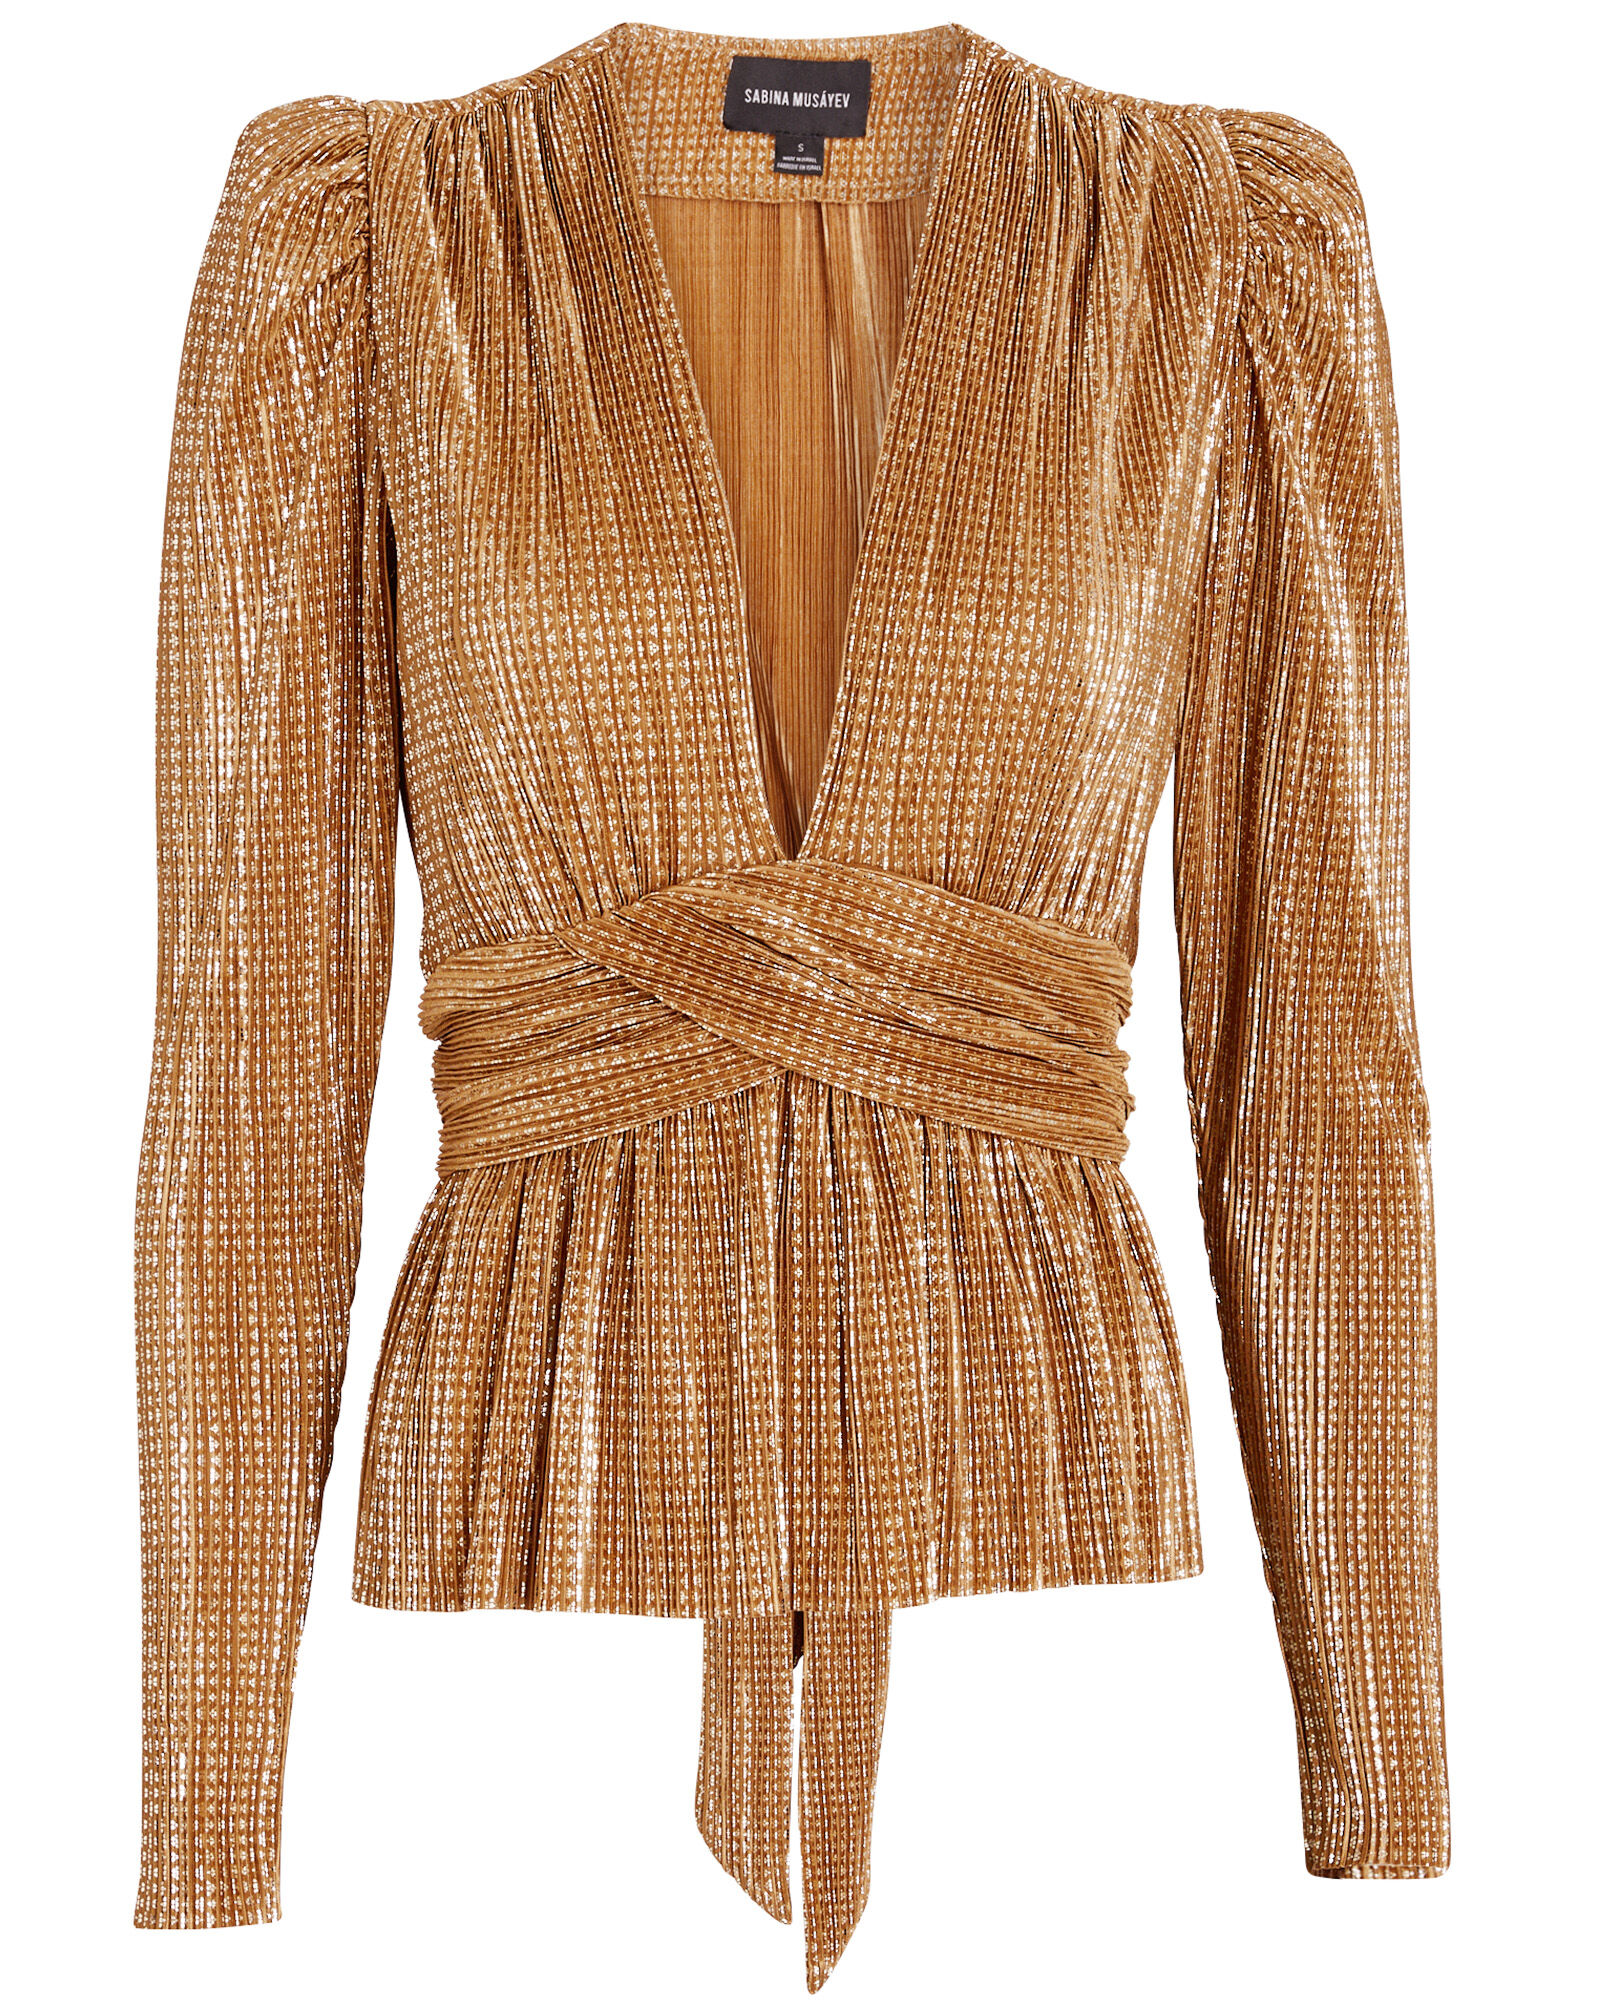 Sammy Plissé Lurex Top, GOLD, hi-res